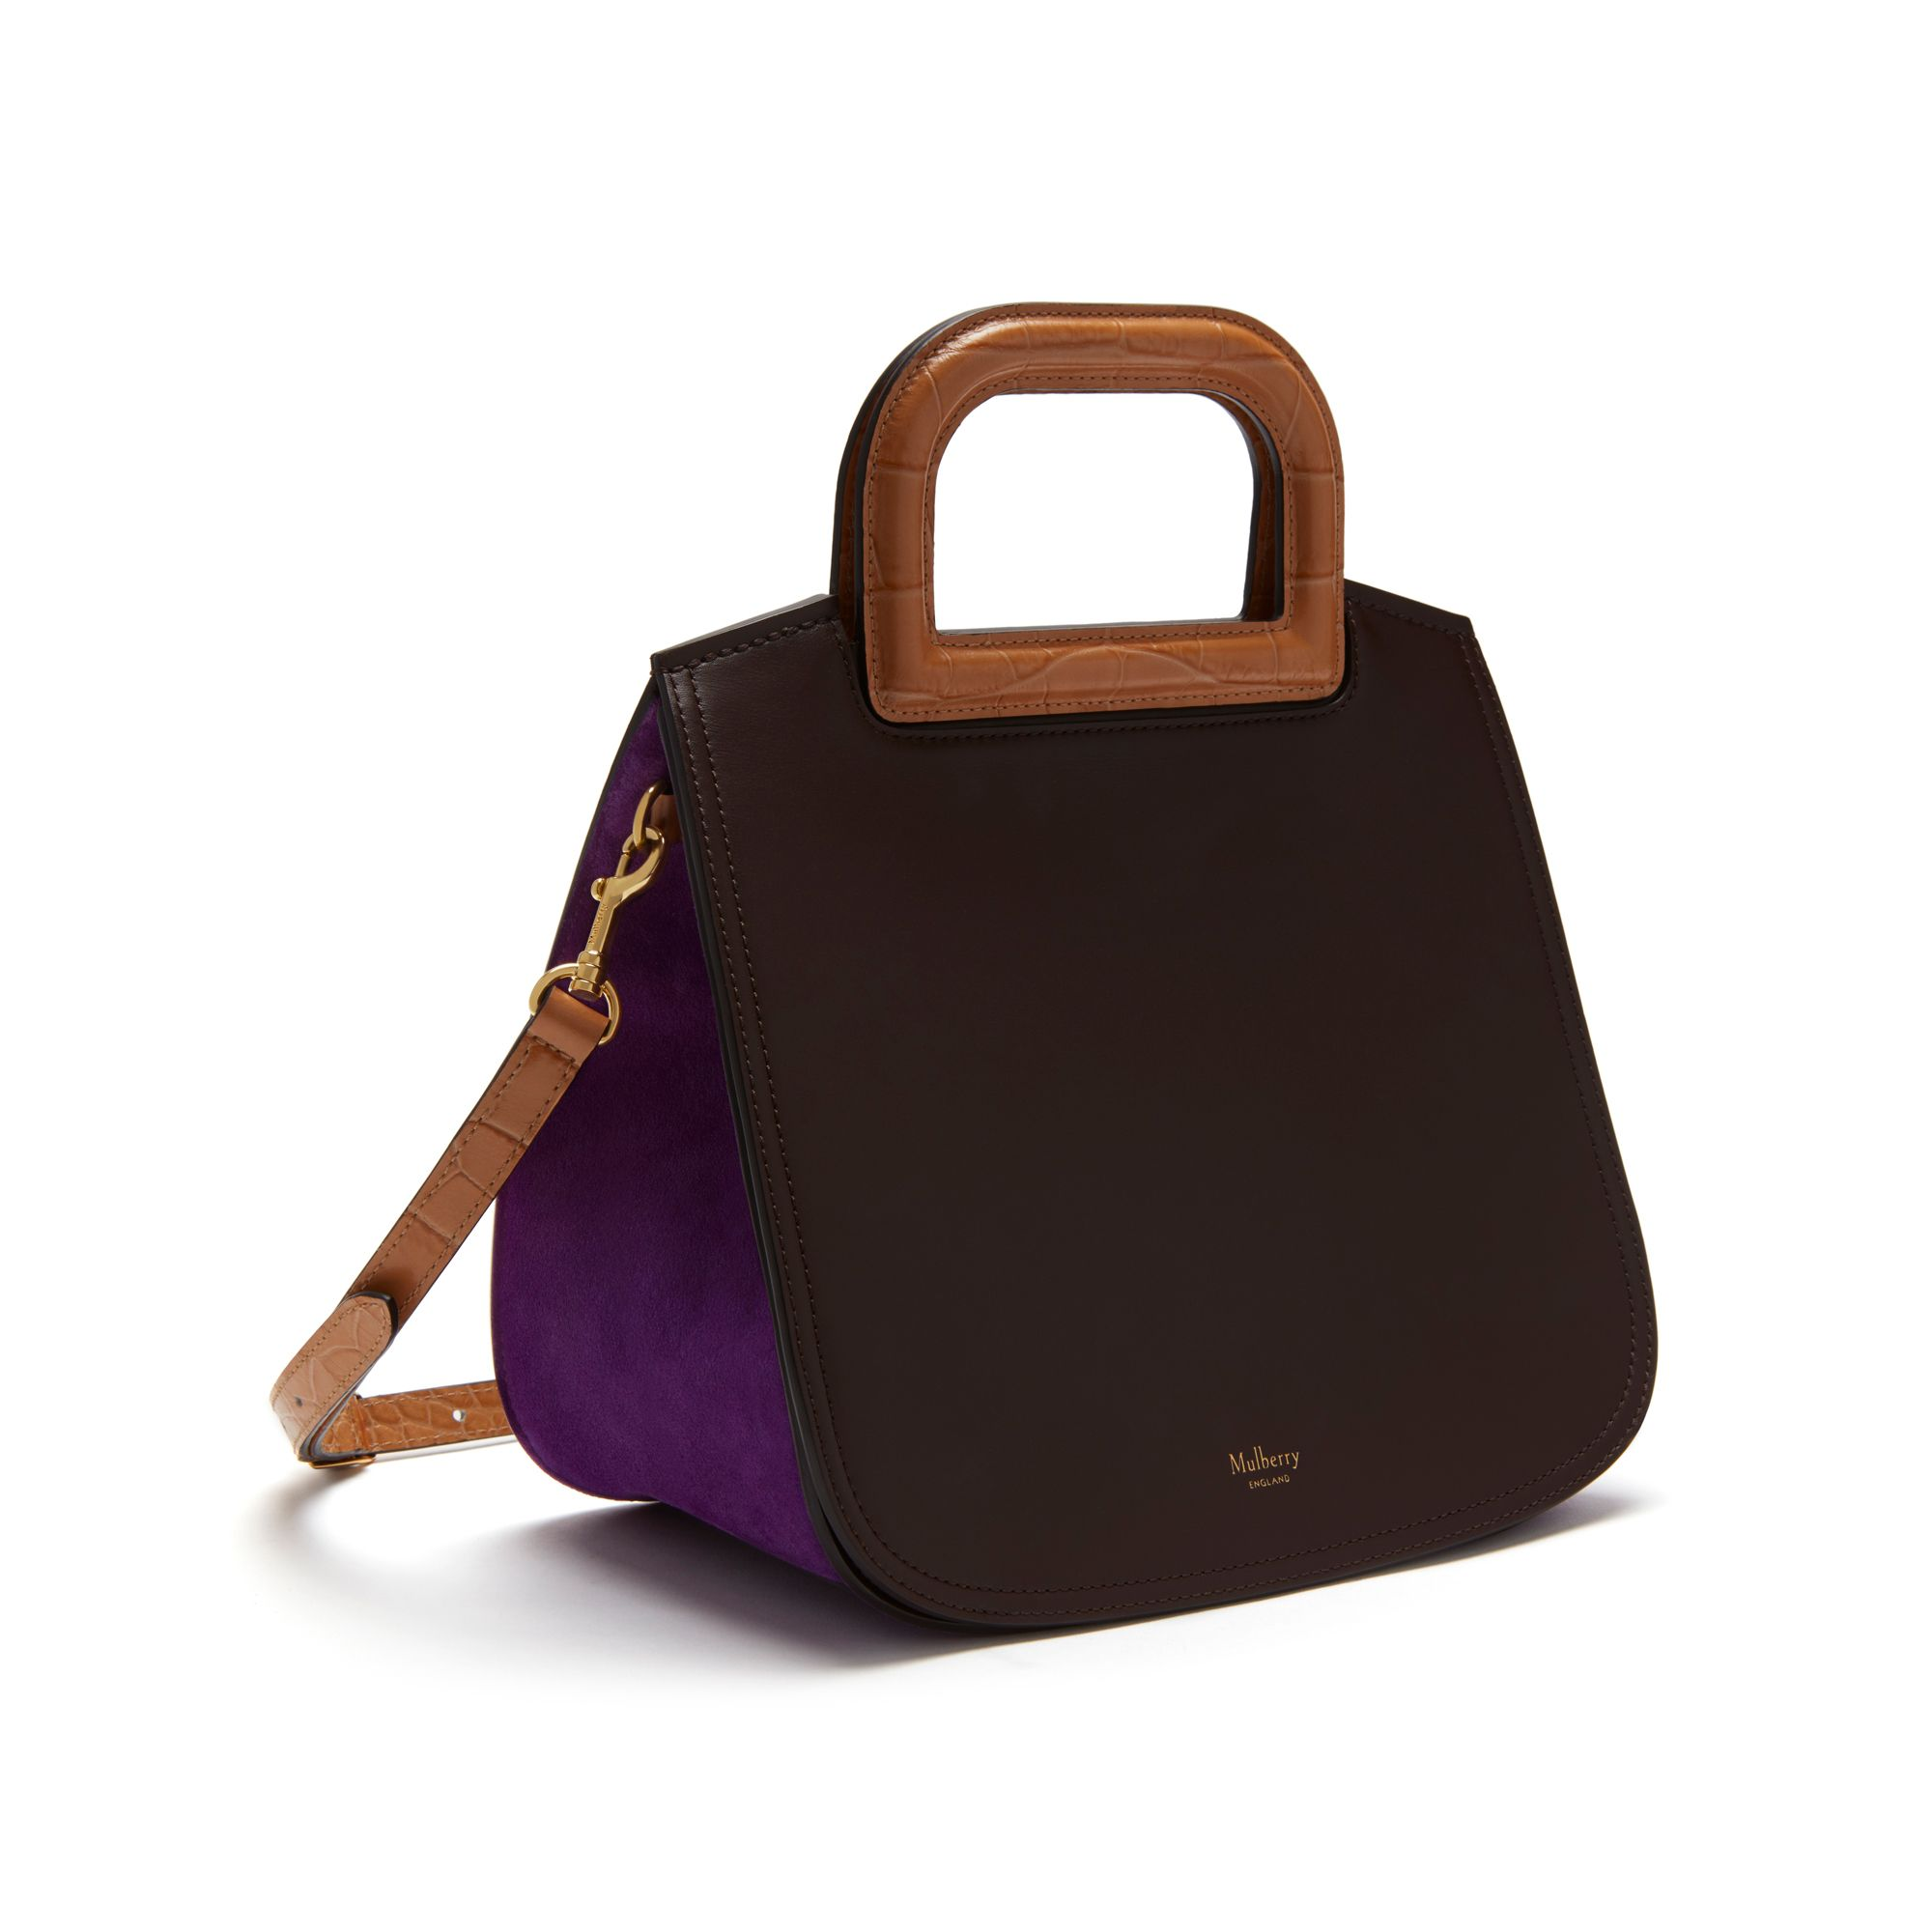 Mulberry sale  the best handbags in the UK sale 09dbd9c147a13